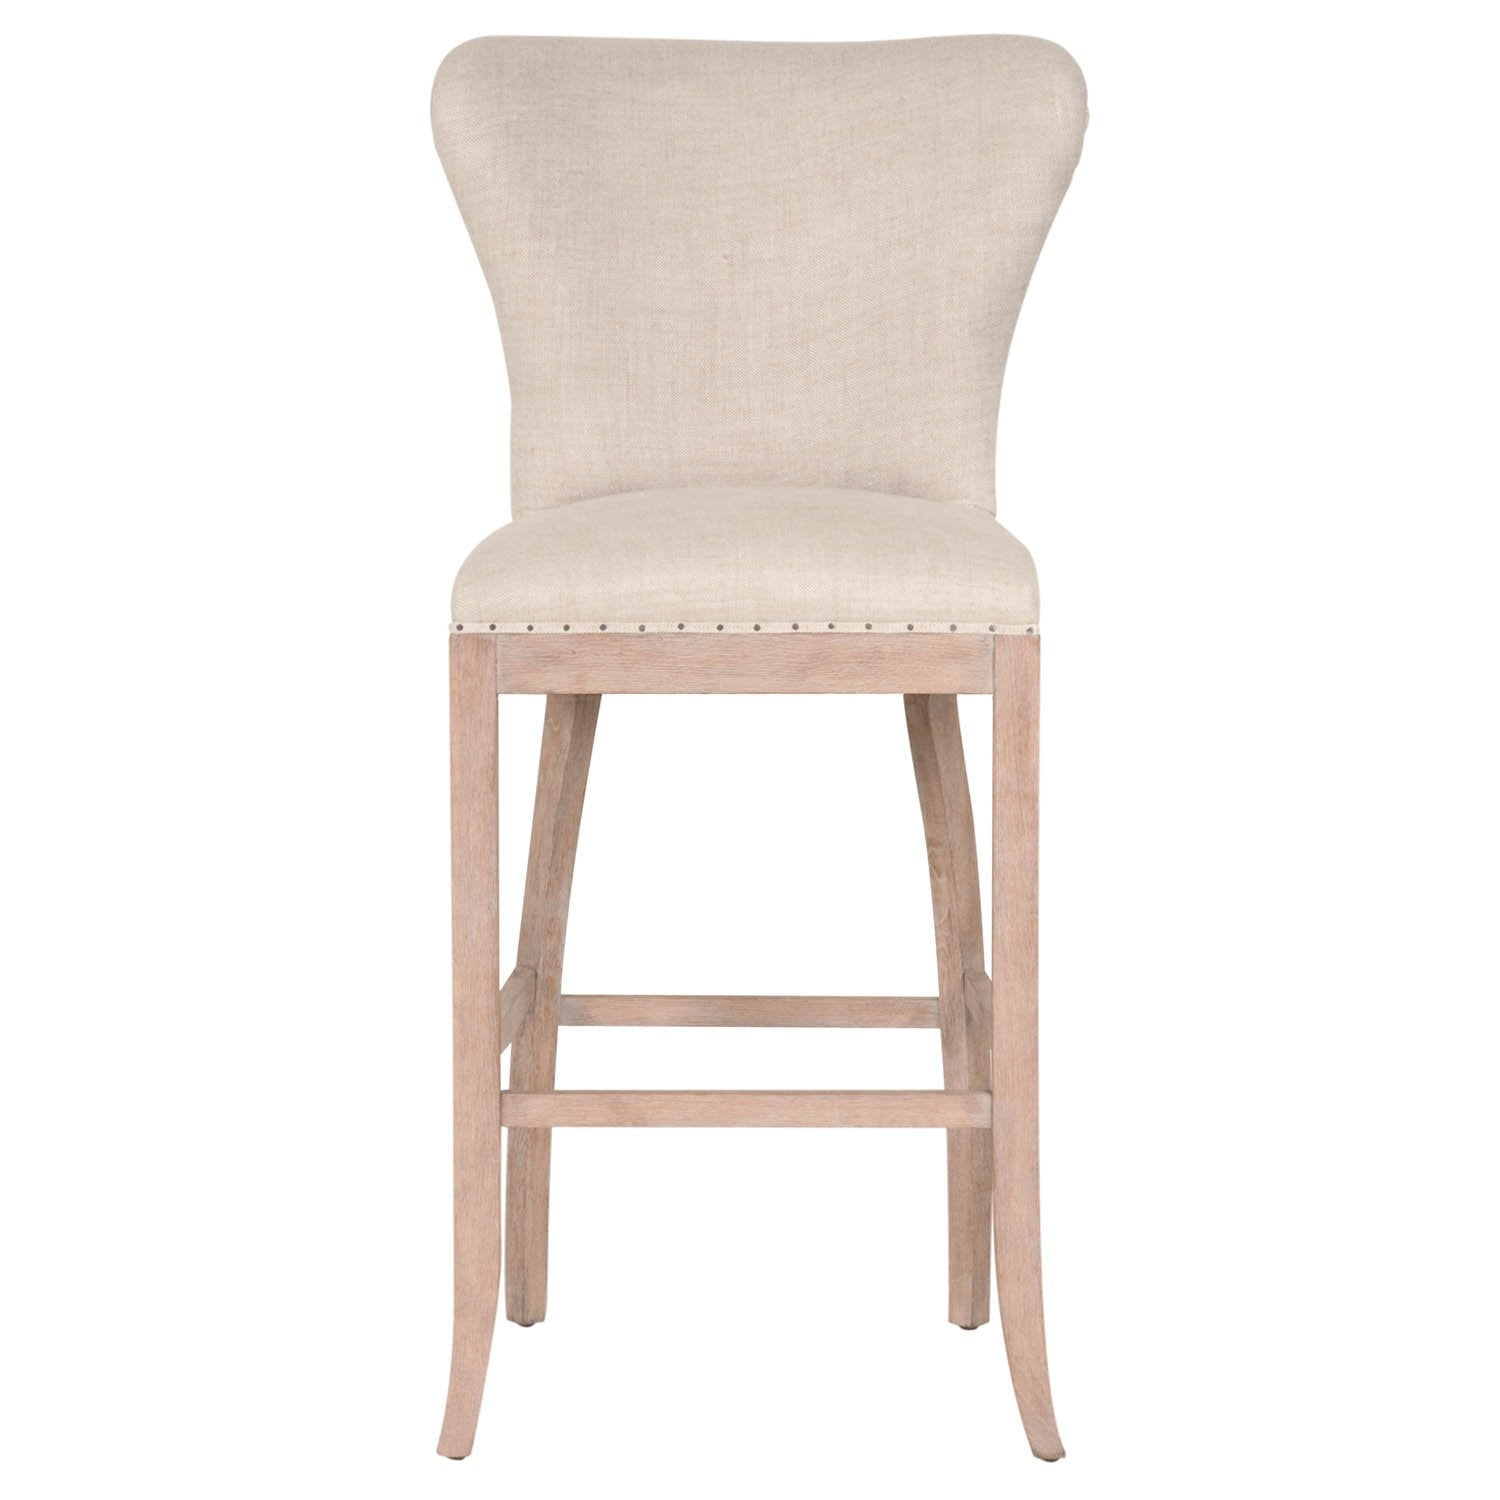 Welles Barstool in Bisque French Linen